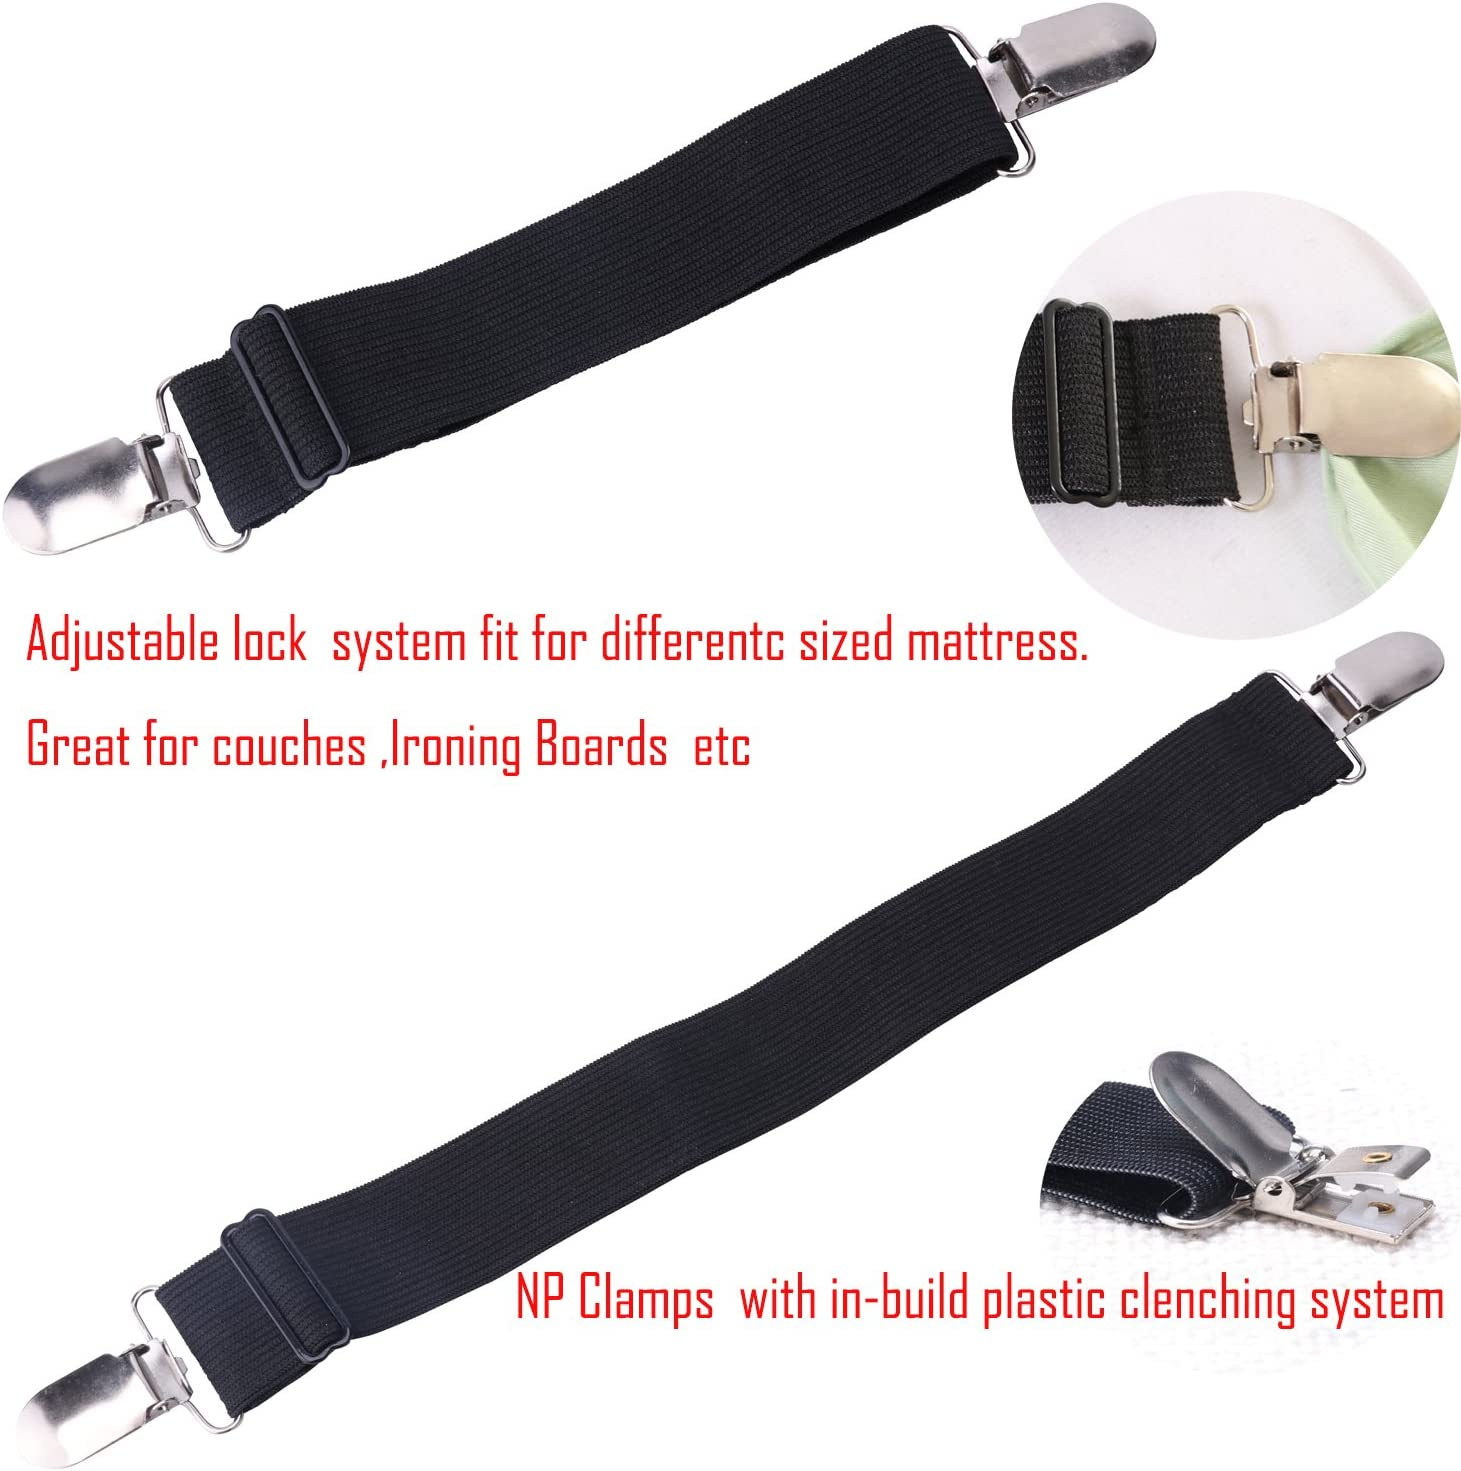 Elastic Bed Sheet Straps Clips Adjustable Heavy Duty Grippers Straps Suspender Fasteners Holder to Keep Your Sheet in Place and Neat 4 Pack Black